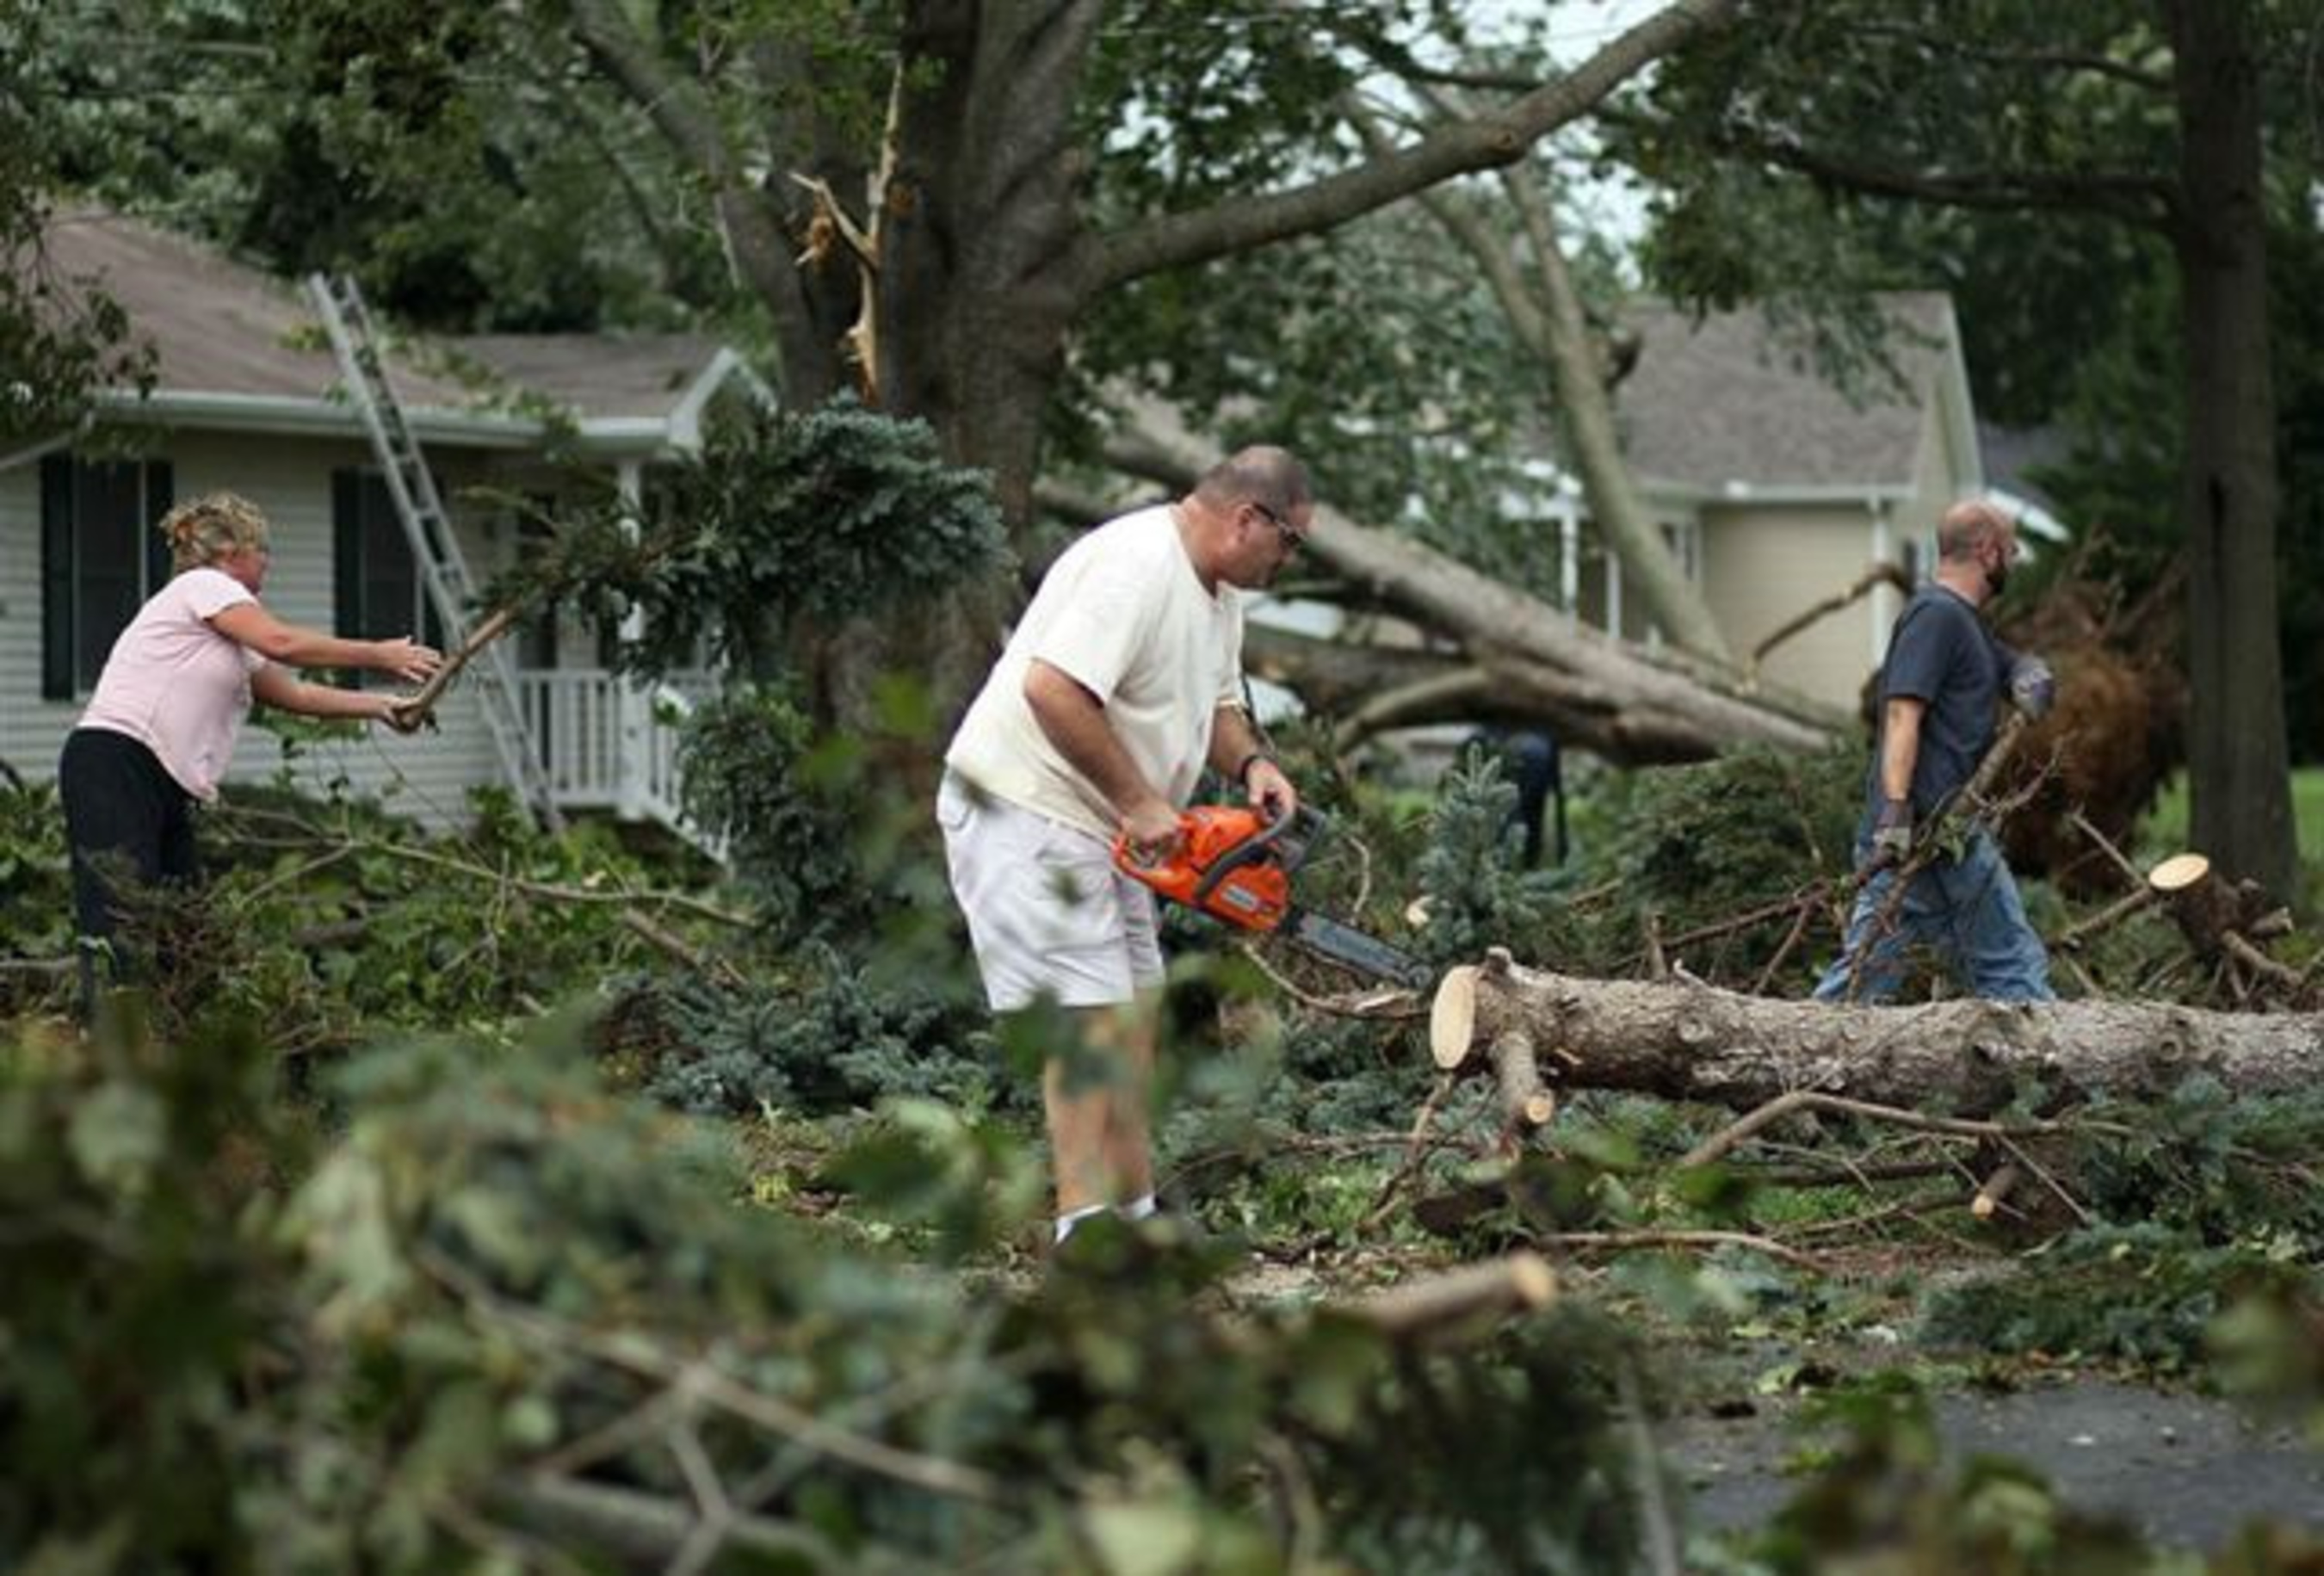 Emergency preparation before a storm strikes is important. Getting your chainsaw ready, filling up your fuel can, and finding your work gloves, is just as important as stocking up on toilet paper, bread and milk at the grocery store before a storm, says the Outdoor Power Equipment Institute (OPEI).